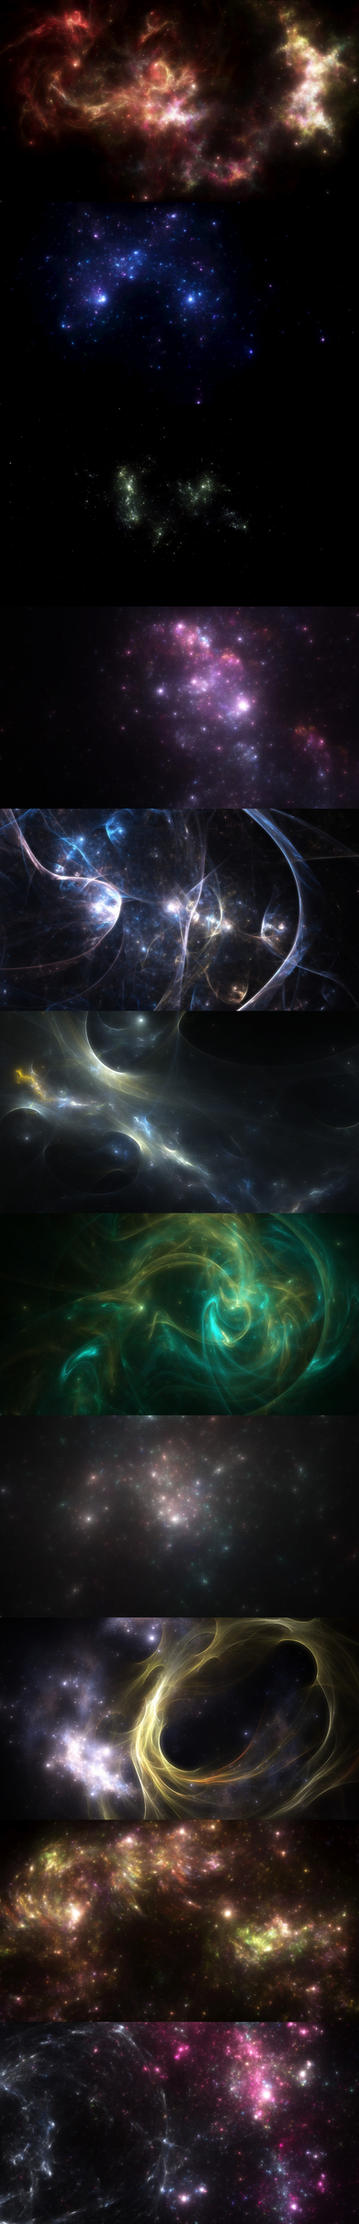 More Space Backdrops by dmaland